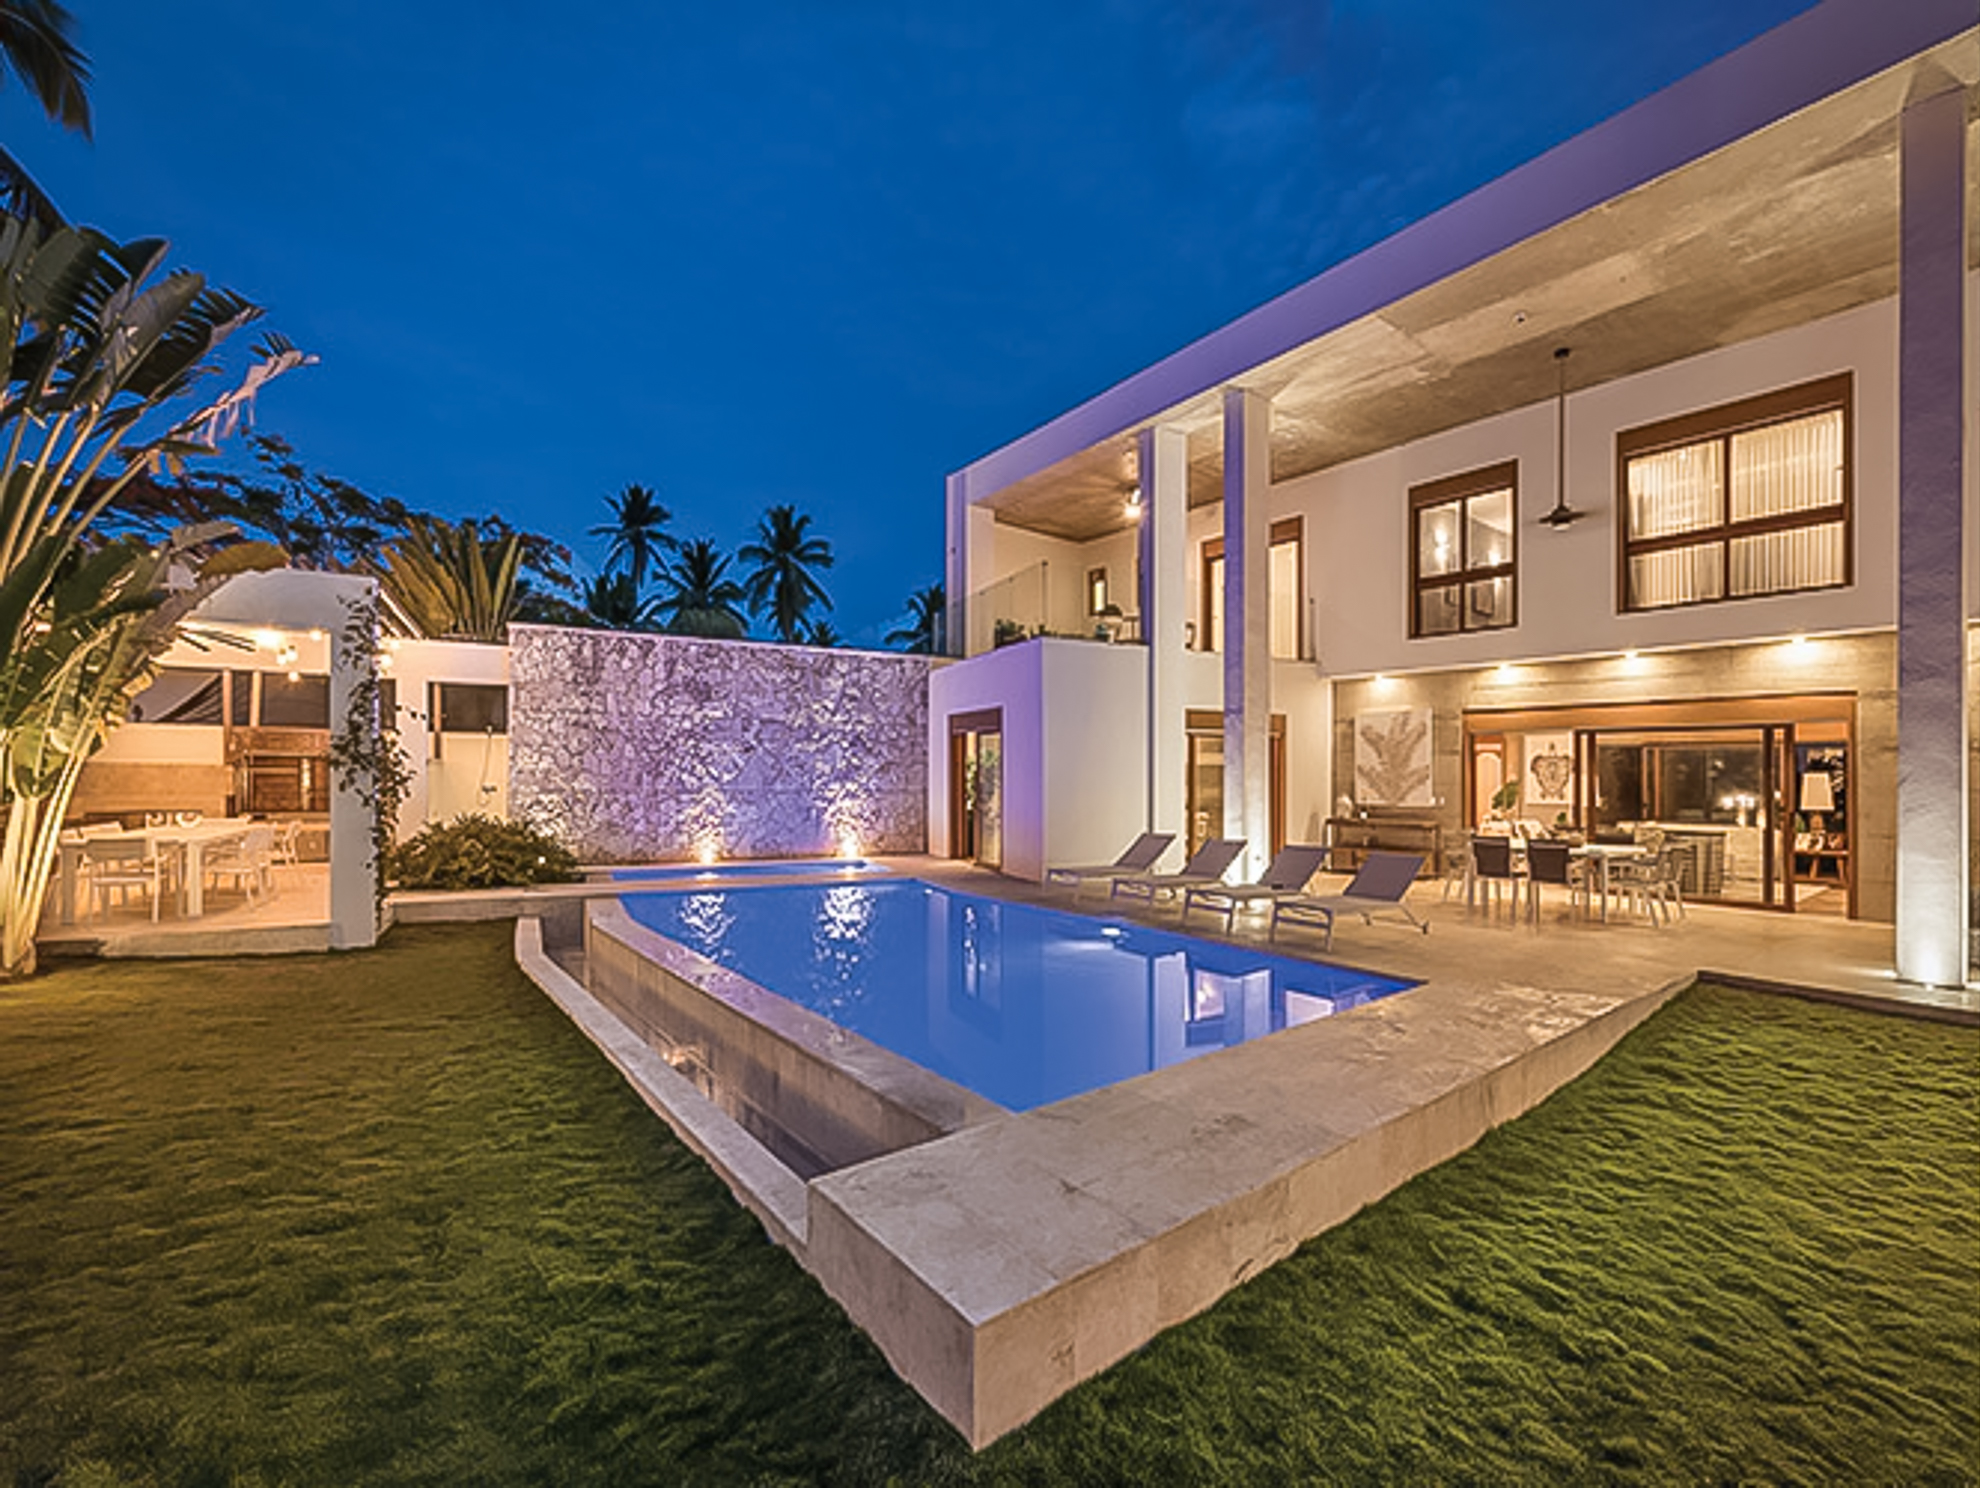 OFF-MARKET – Villa Lulú – An arquitectural Jewel at Portillo Beach, Samana